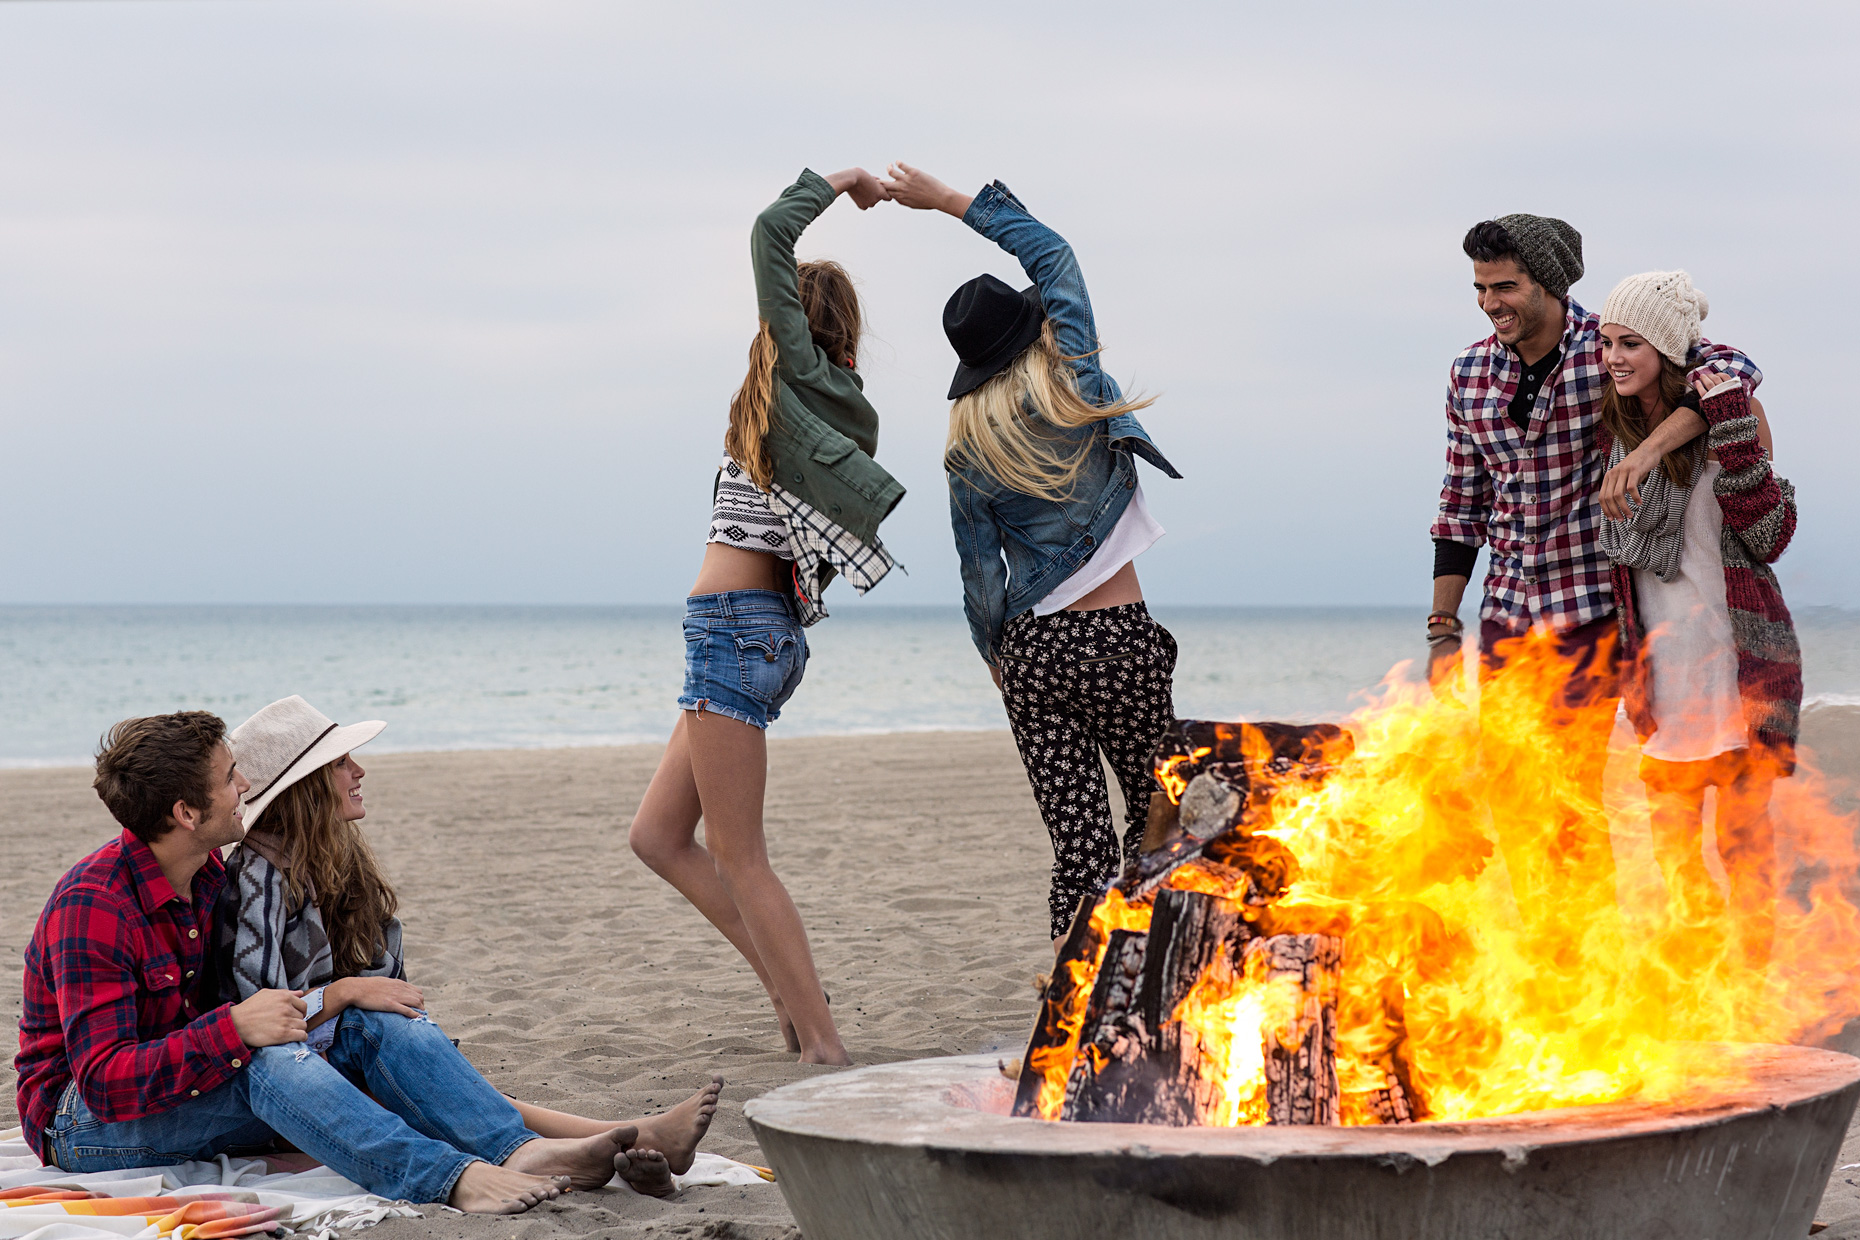 131023__Next-1149-John Duarte_Lifestyle_Dockweiler_Campfire_Group_Silly_Beach_web.jpg